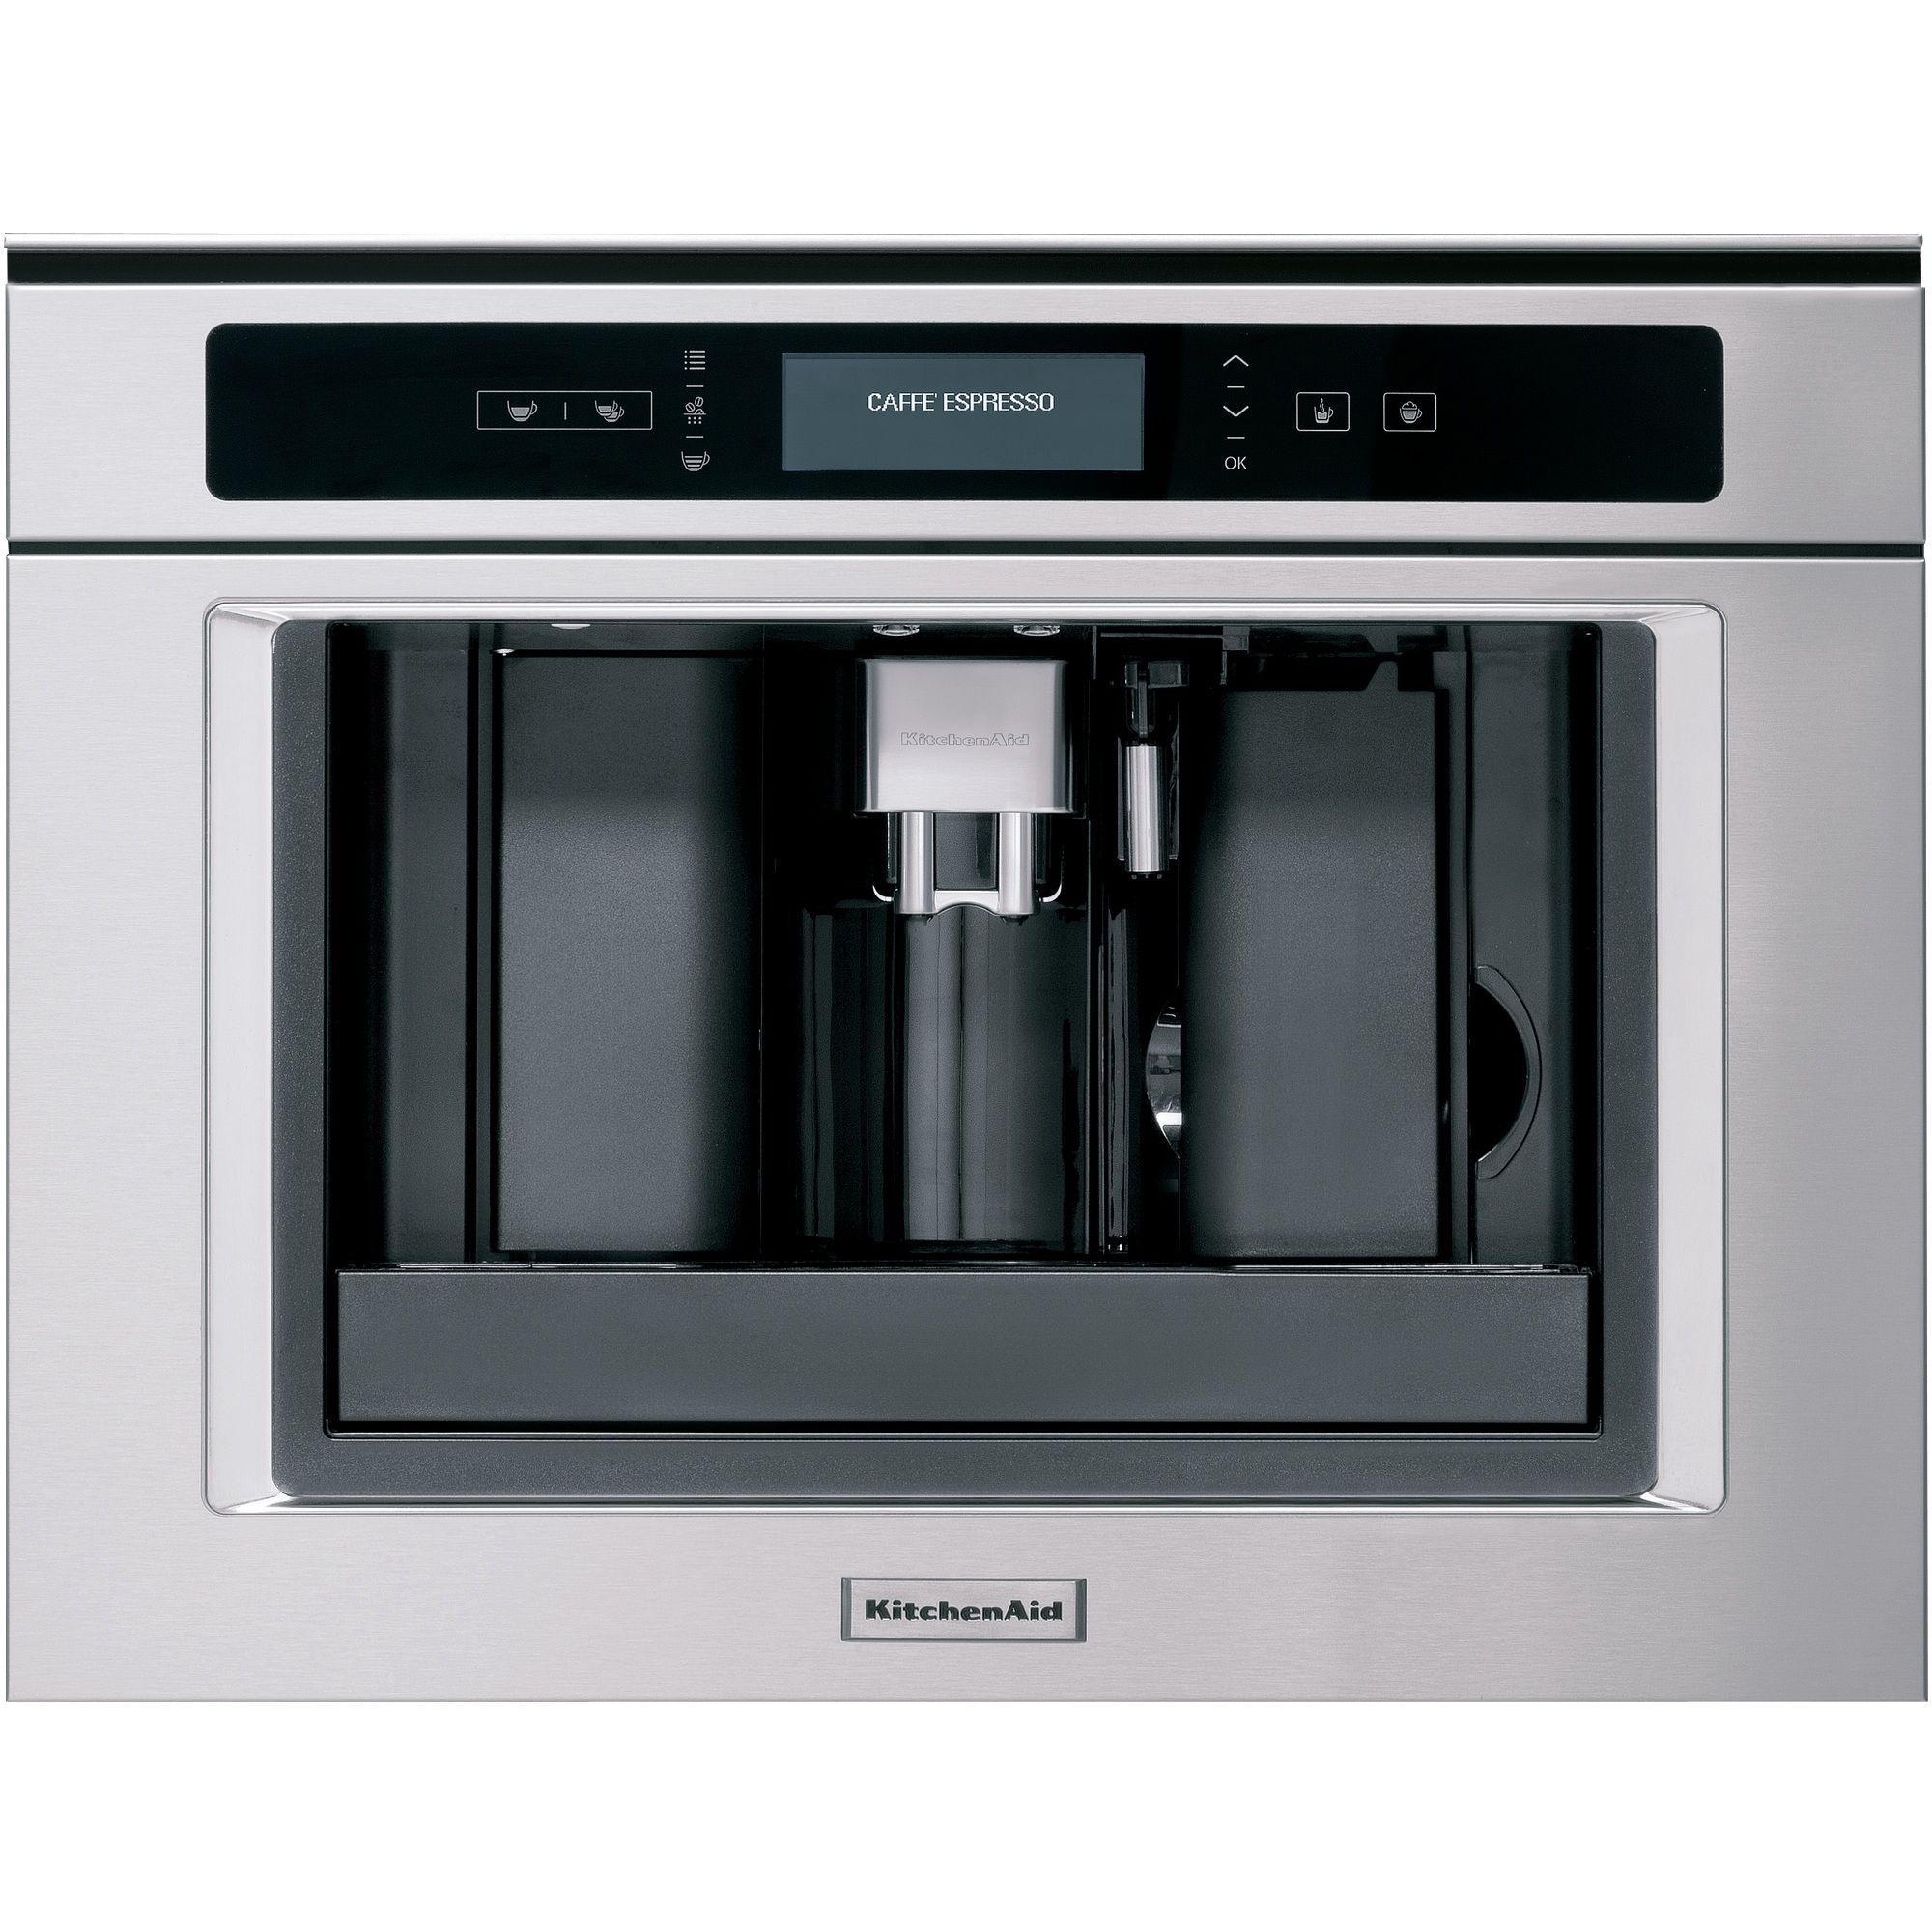 Built In Coffee Maker Reviews : Buy KitchenAid KQXXX45600 Built-In Coffee Machine, Stainless Steel John Lewis